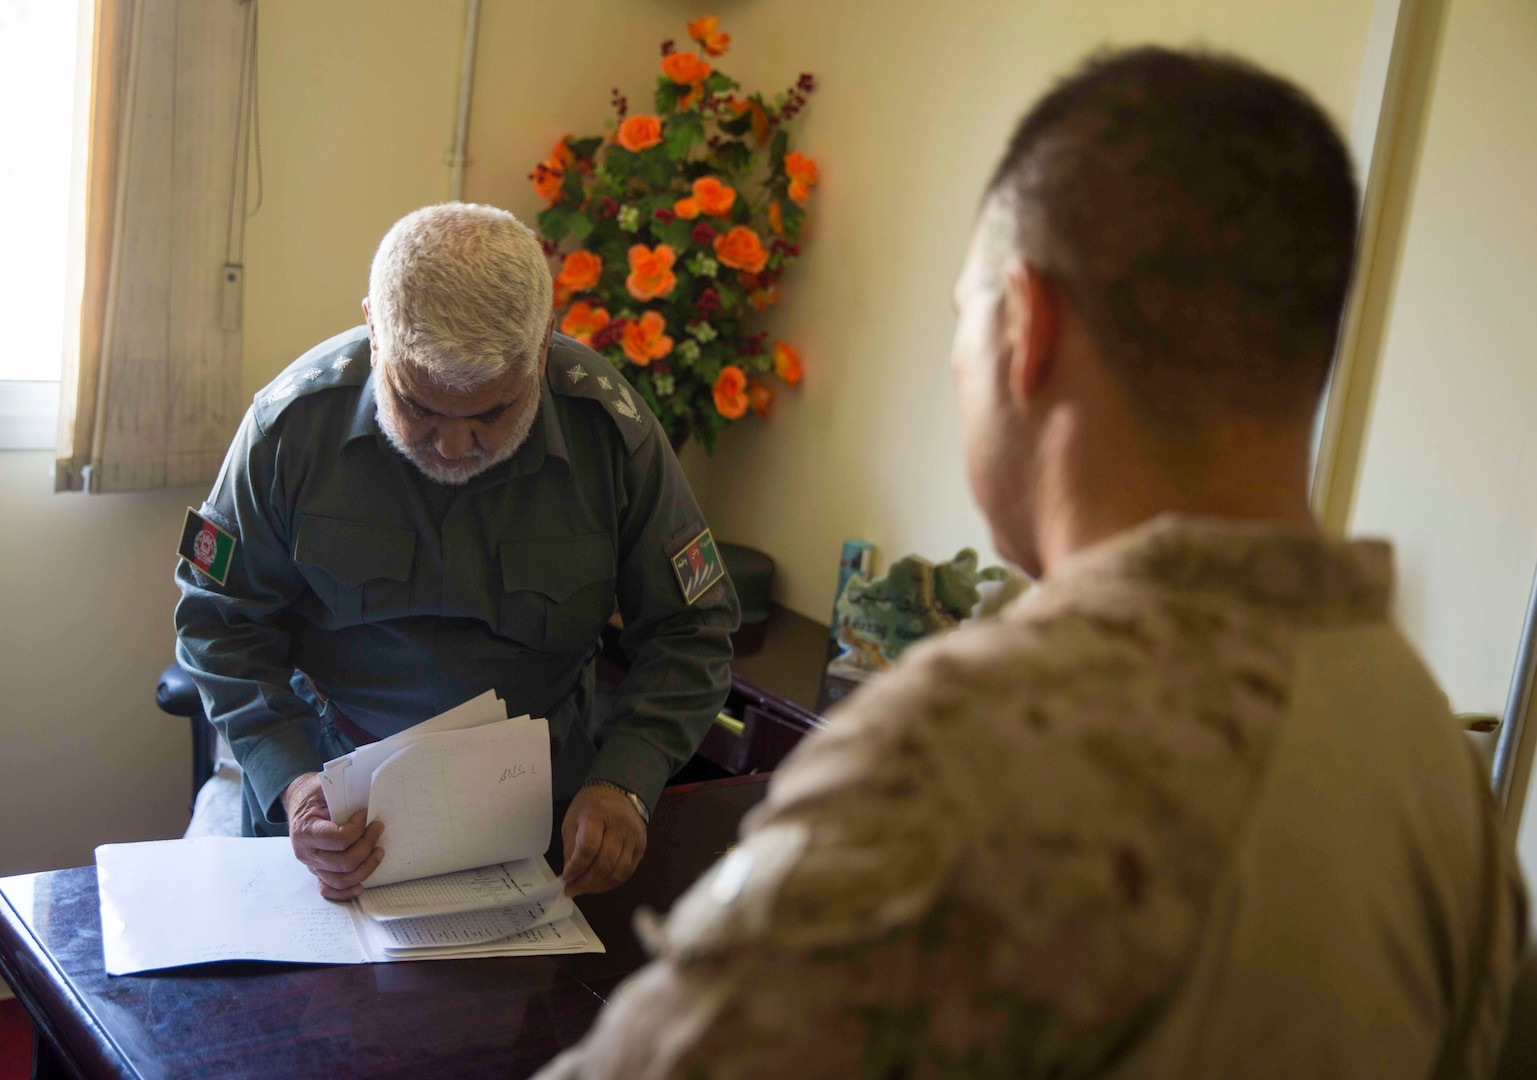 U.S. Marine advisors with Task Force Southwest speak with their counterpart during a train, advise and assist mission at the Helmand Provincial Police Headquarters in Lashkar Gah, Afghanistan, July 9, 2017. This mission provided an opportunity for advisors to meet with their counterparts, review the security posture at the PHQ and ensure that Afghan National Defense and Security Forces have an effective defense of Lashkar Gah. (U.S. Marine Corps photo by Sgt. Justin T. Updegraff)